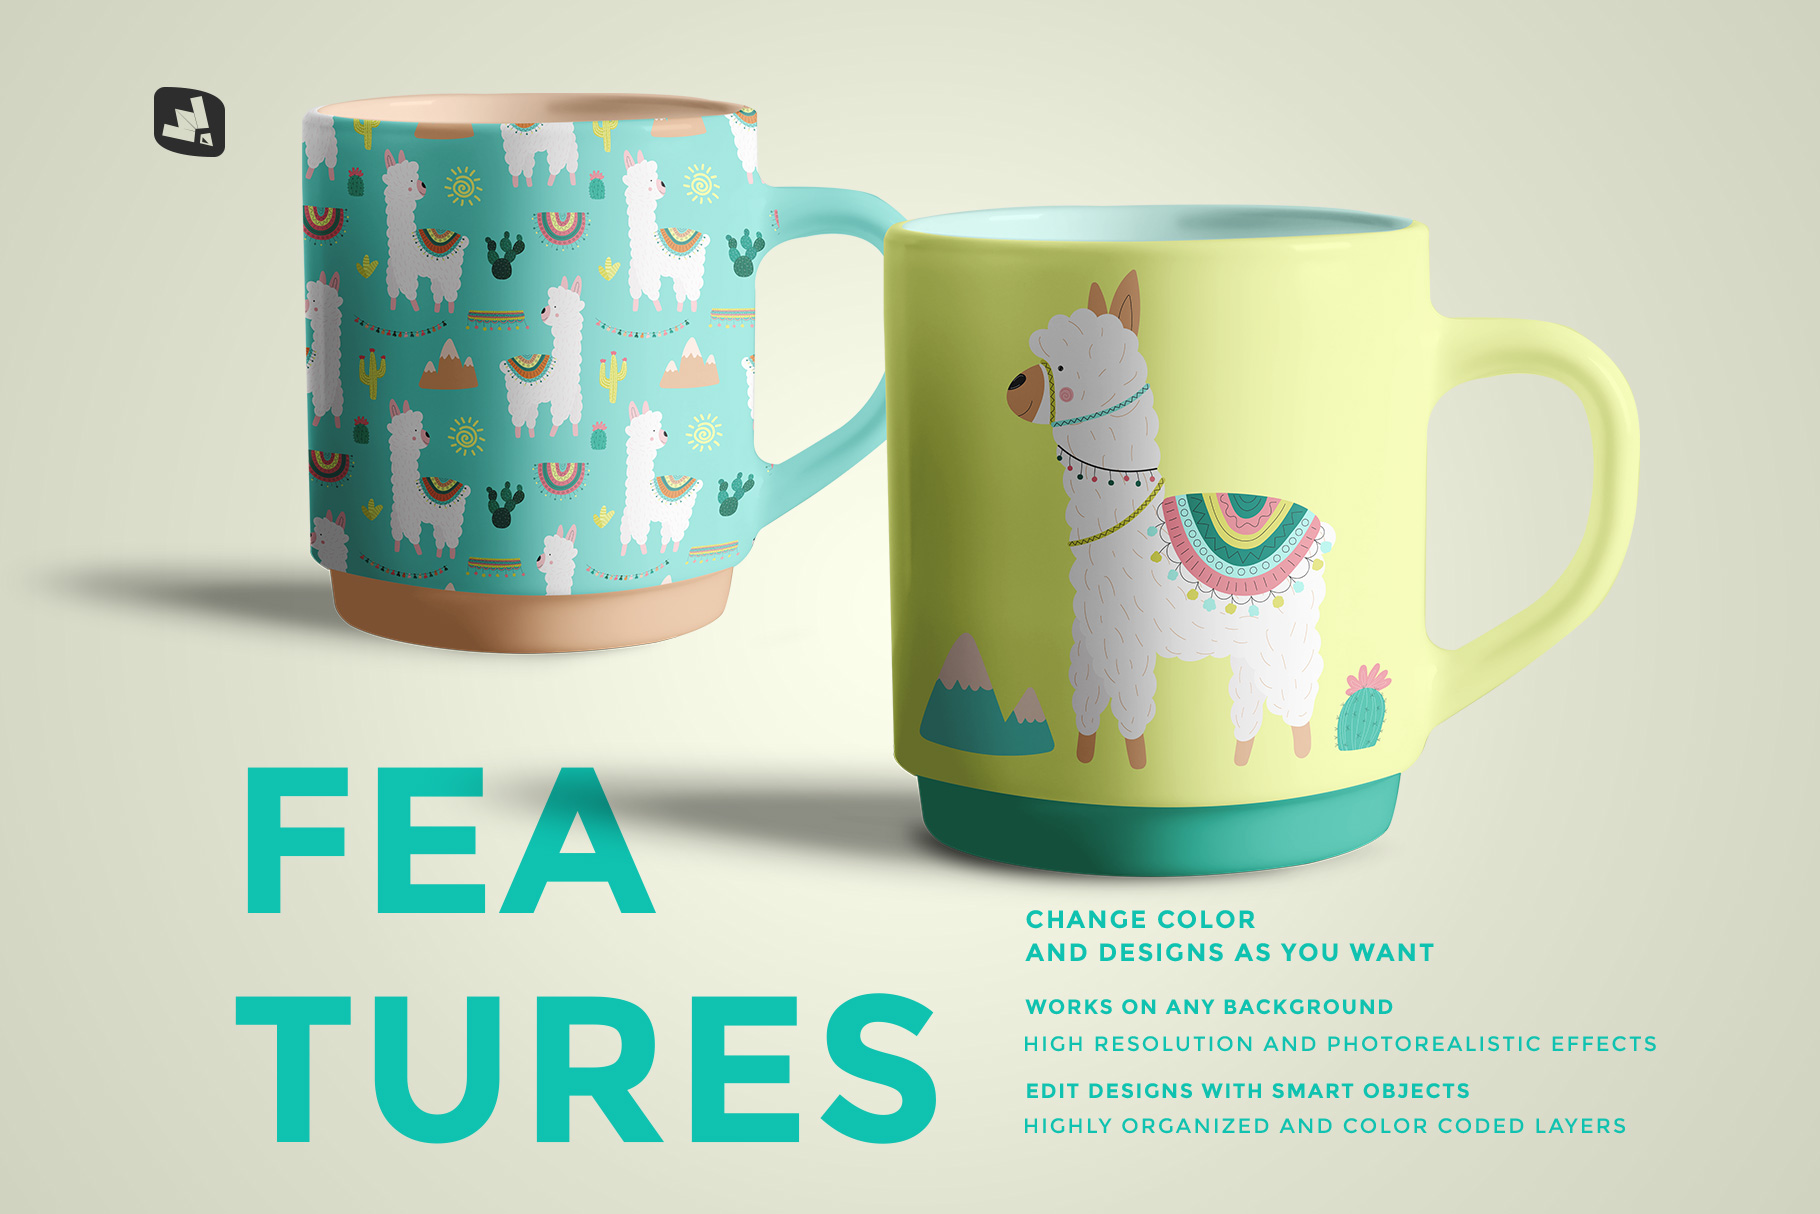 features of the porcelain coffee cups set mockup